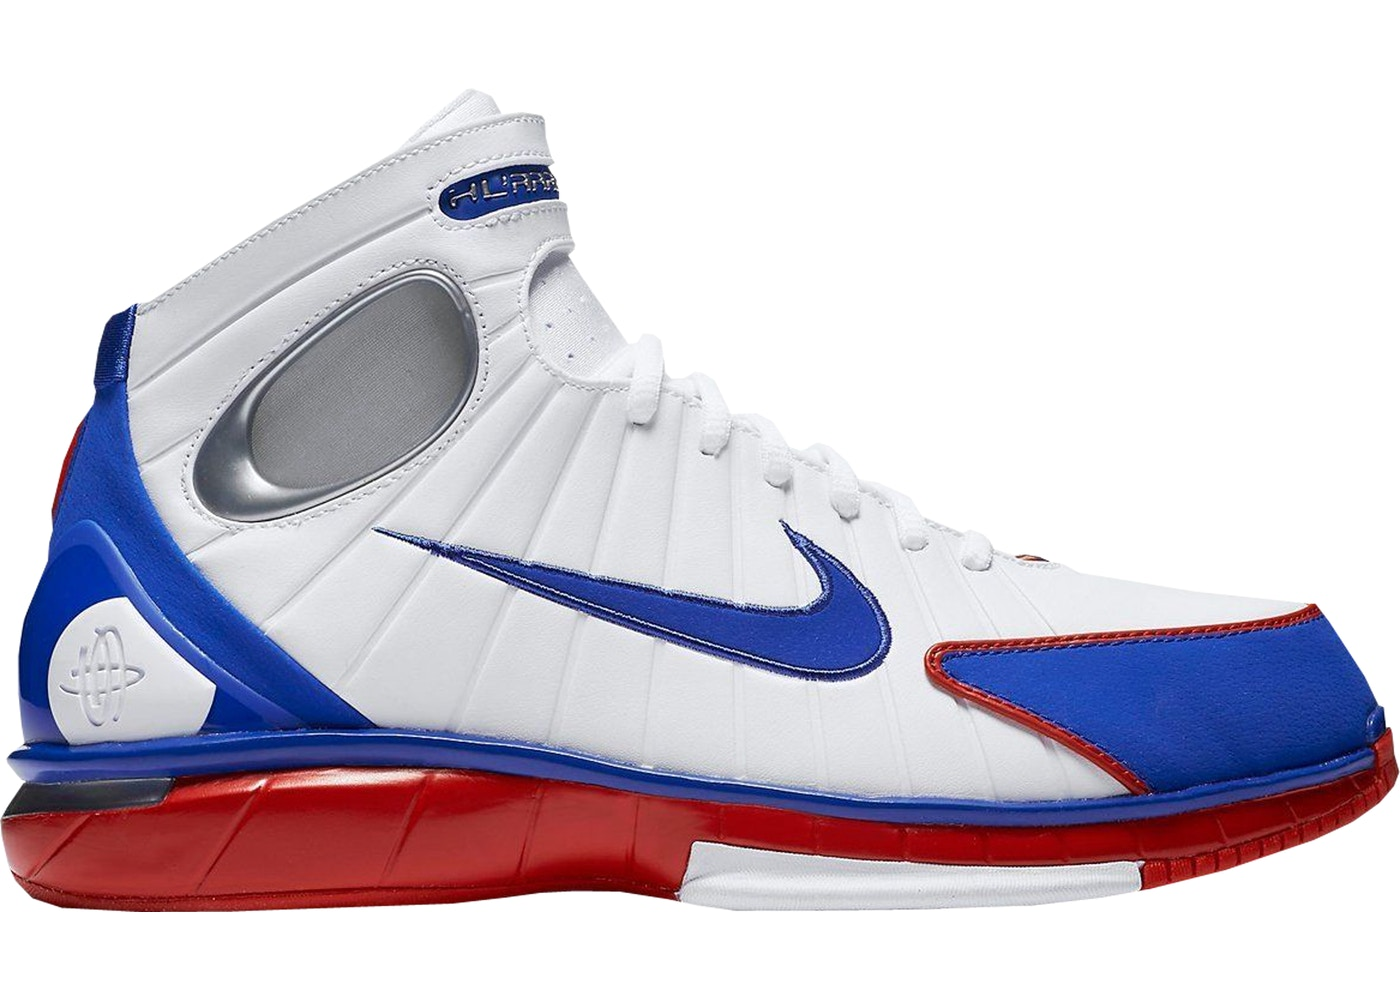 57d06a116ca8 ... Midnight Navy Official Images Of The Nike Air Zoom Huarache 2K4 All  Star Air Zoom Huarache 2K4 All-Star (2016) ...